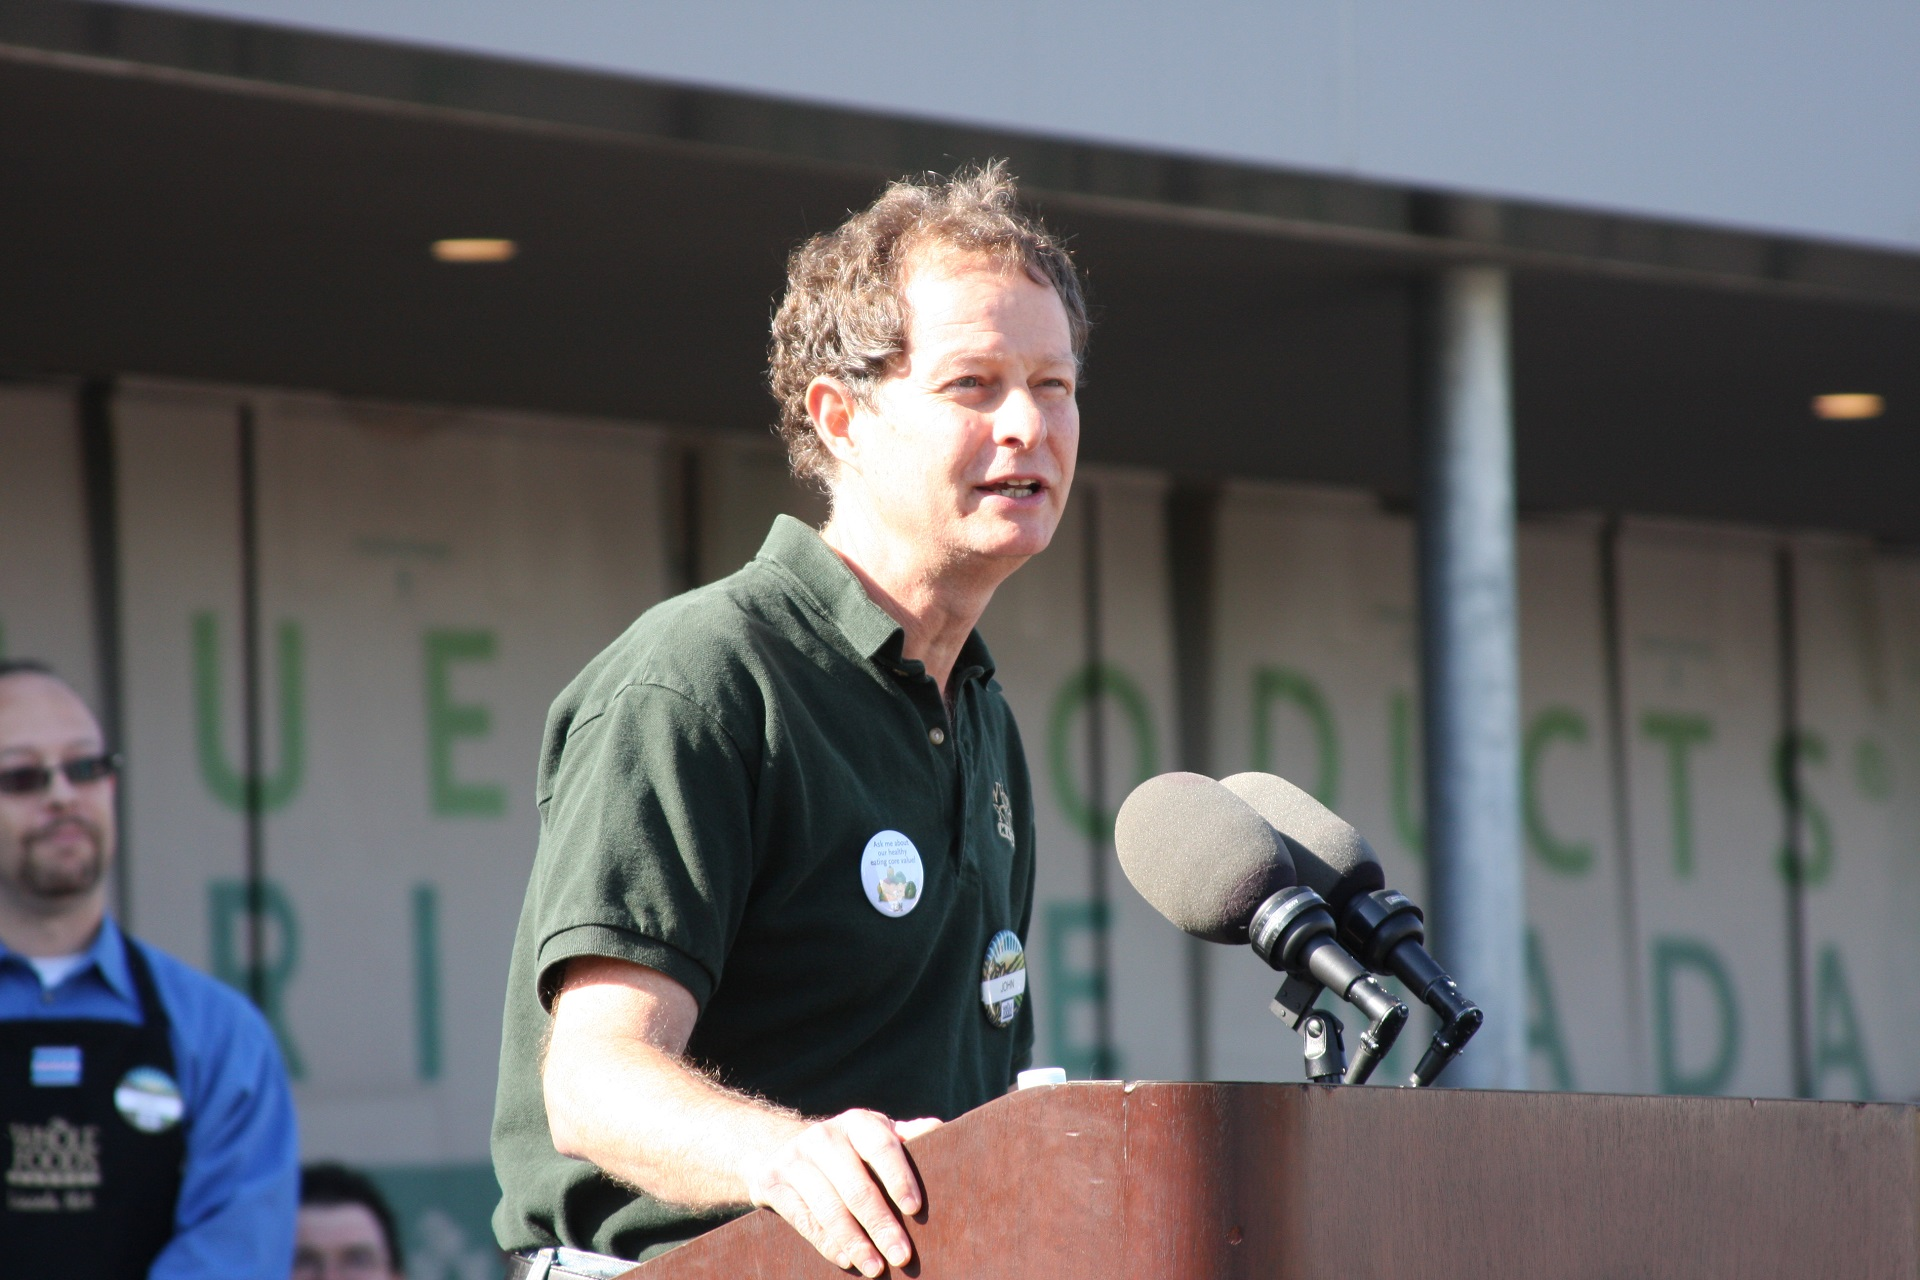 John Mackey is a vegan